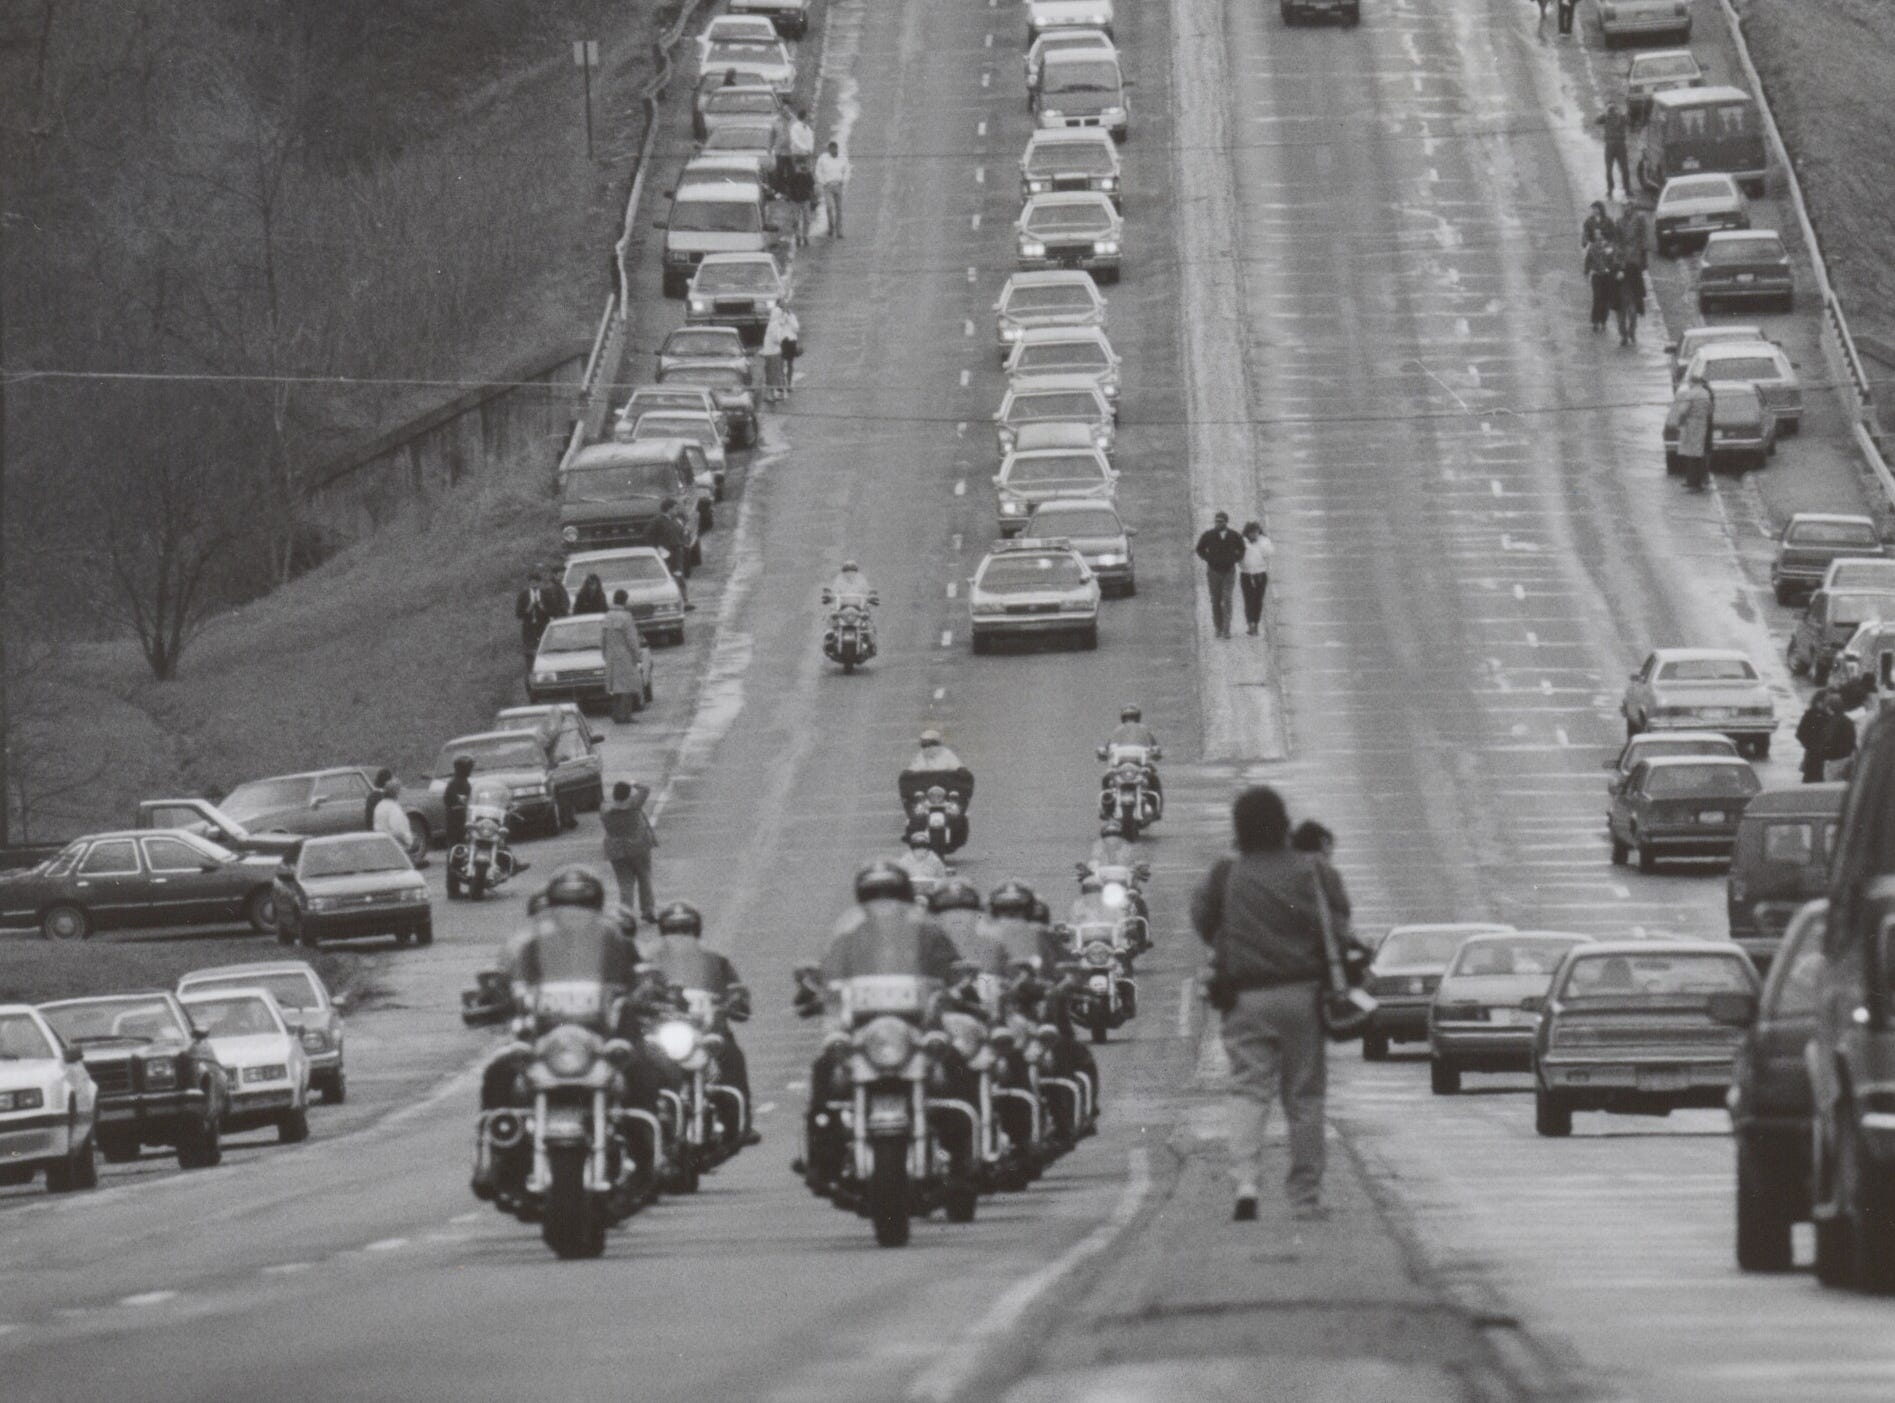 A police escort leads hundreds of cars in the funeral procession of Ryan White to the cemetery. April 11, 1990